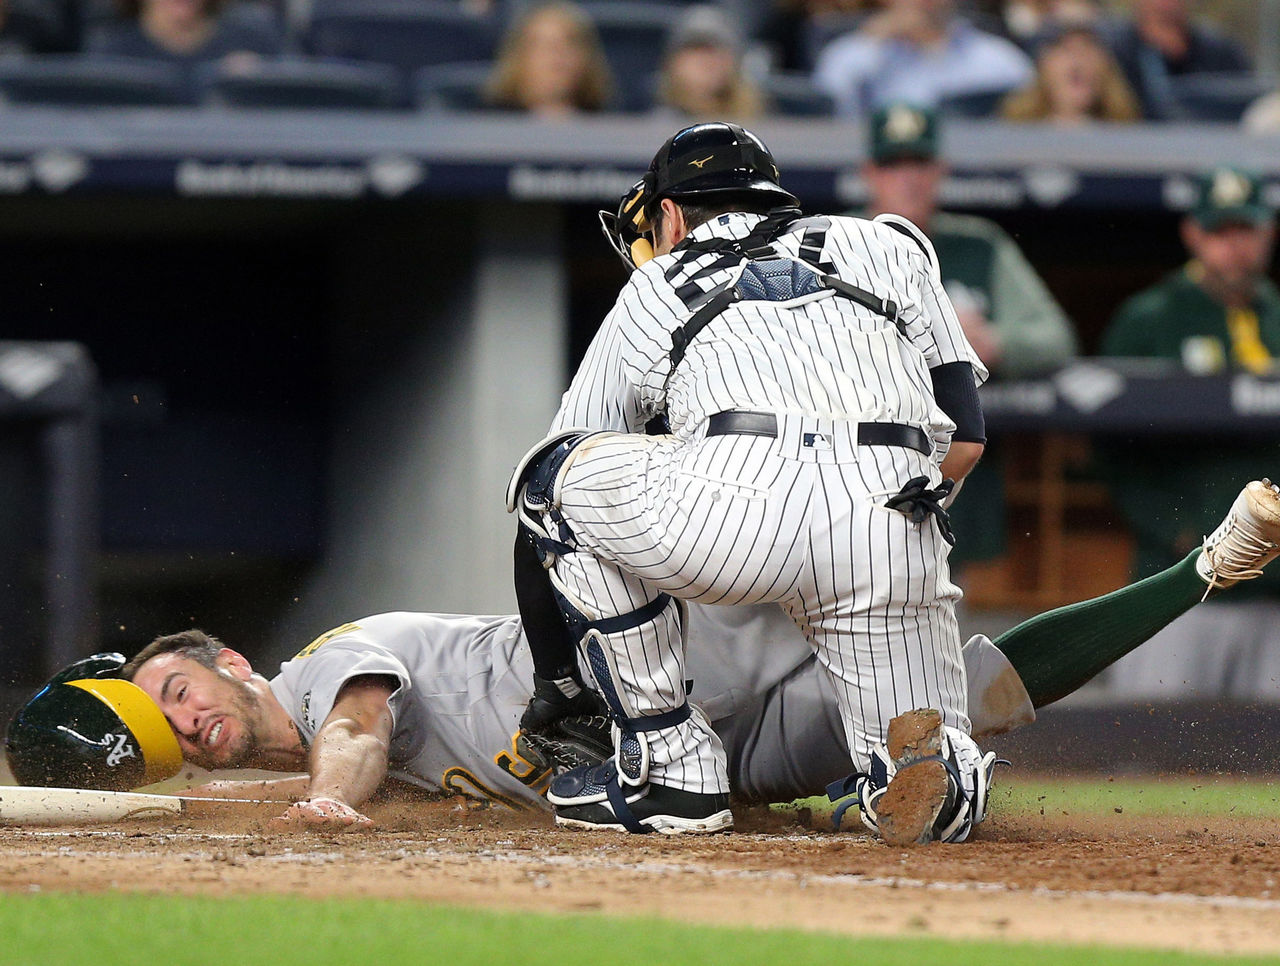 Cropped_2017-05-27t020535z_1414102786_nocid_rtrmadp_3_mlb-oakland-athletics-at-new-york-yankees